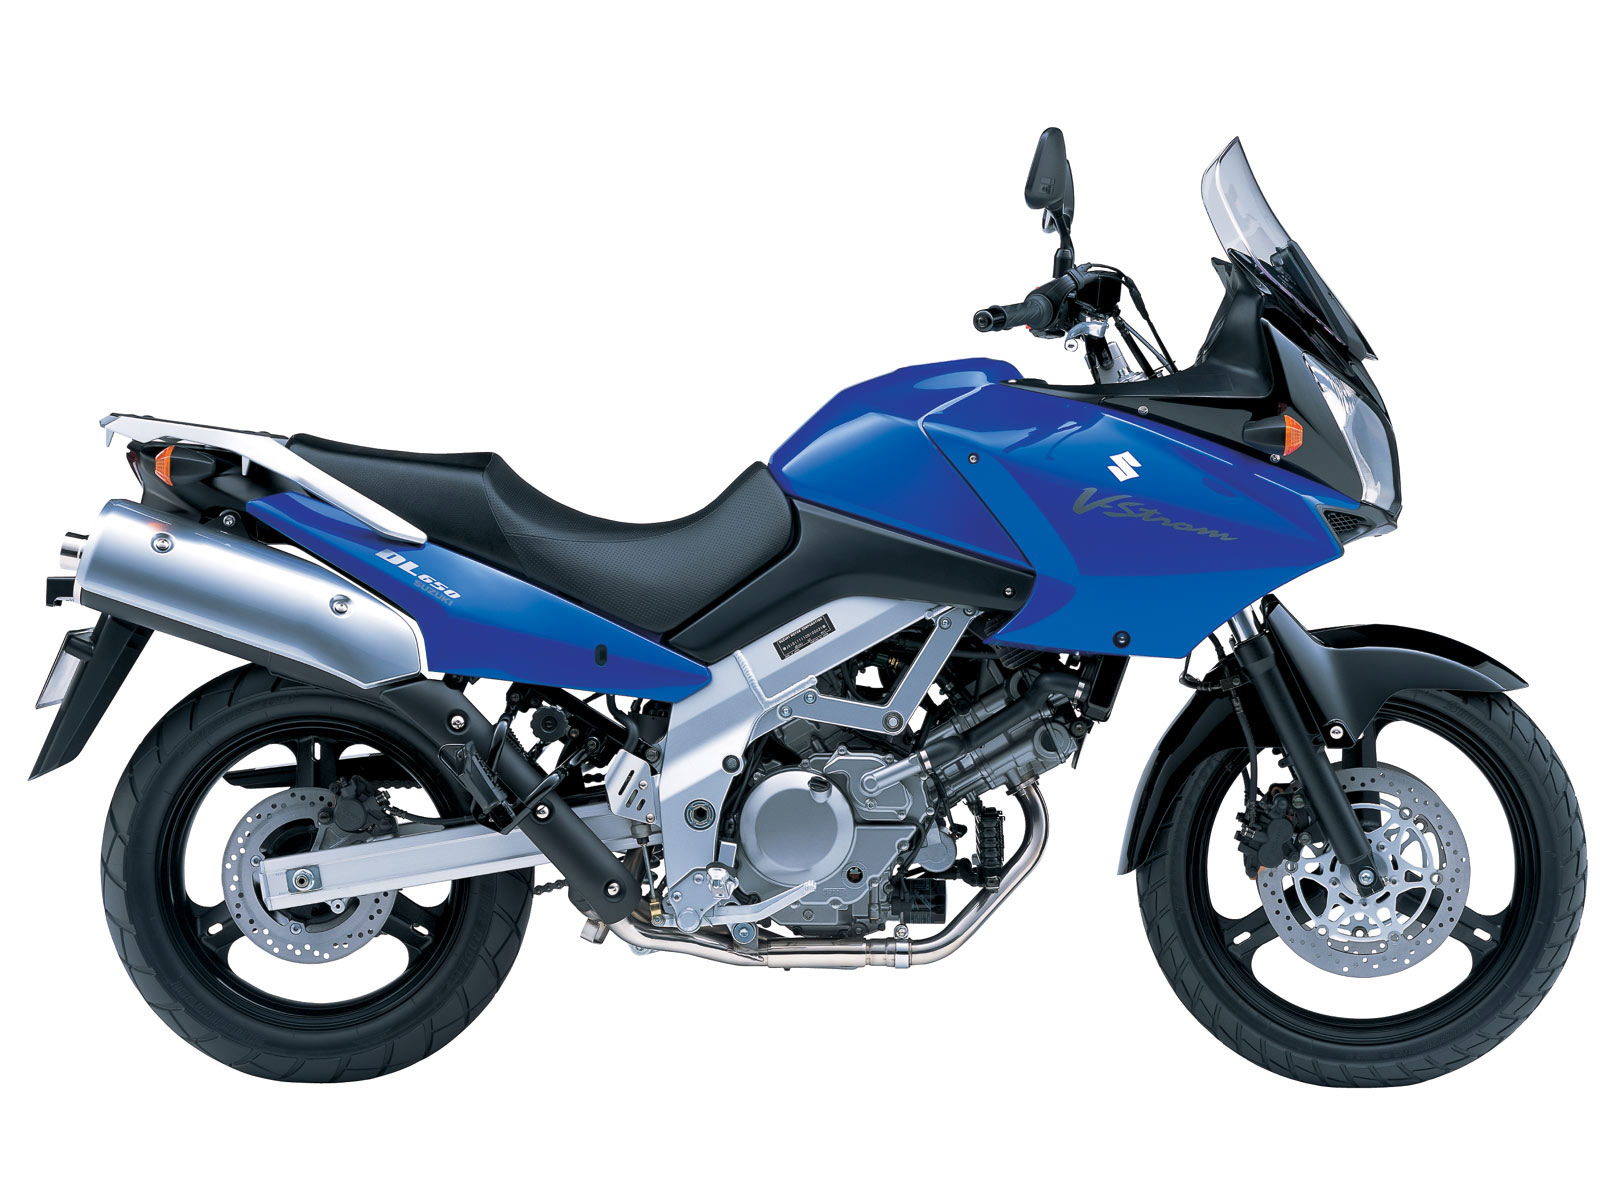 auto trader suzuki v strom 650 2004 specs and pictures collection. Black Bedroom Furniture Sets. Home Design Ideas